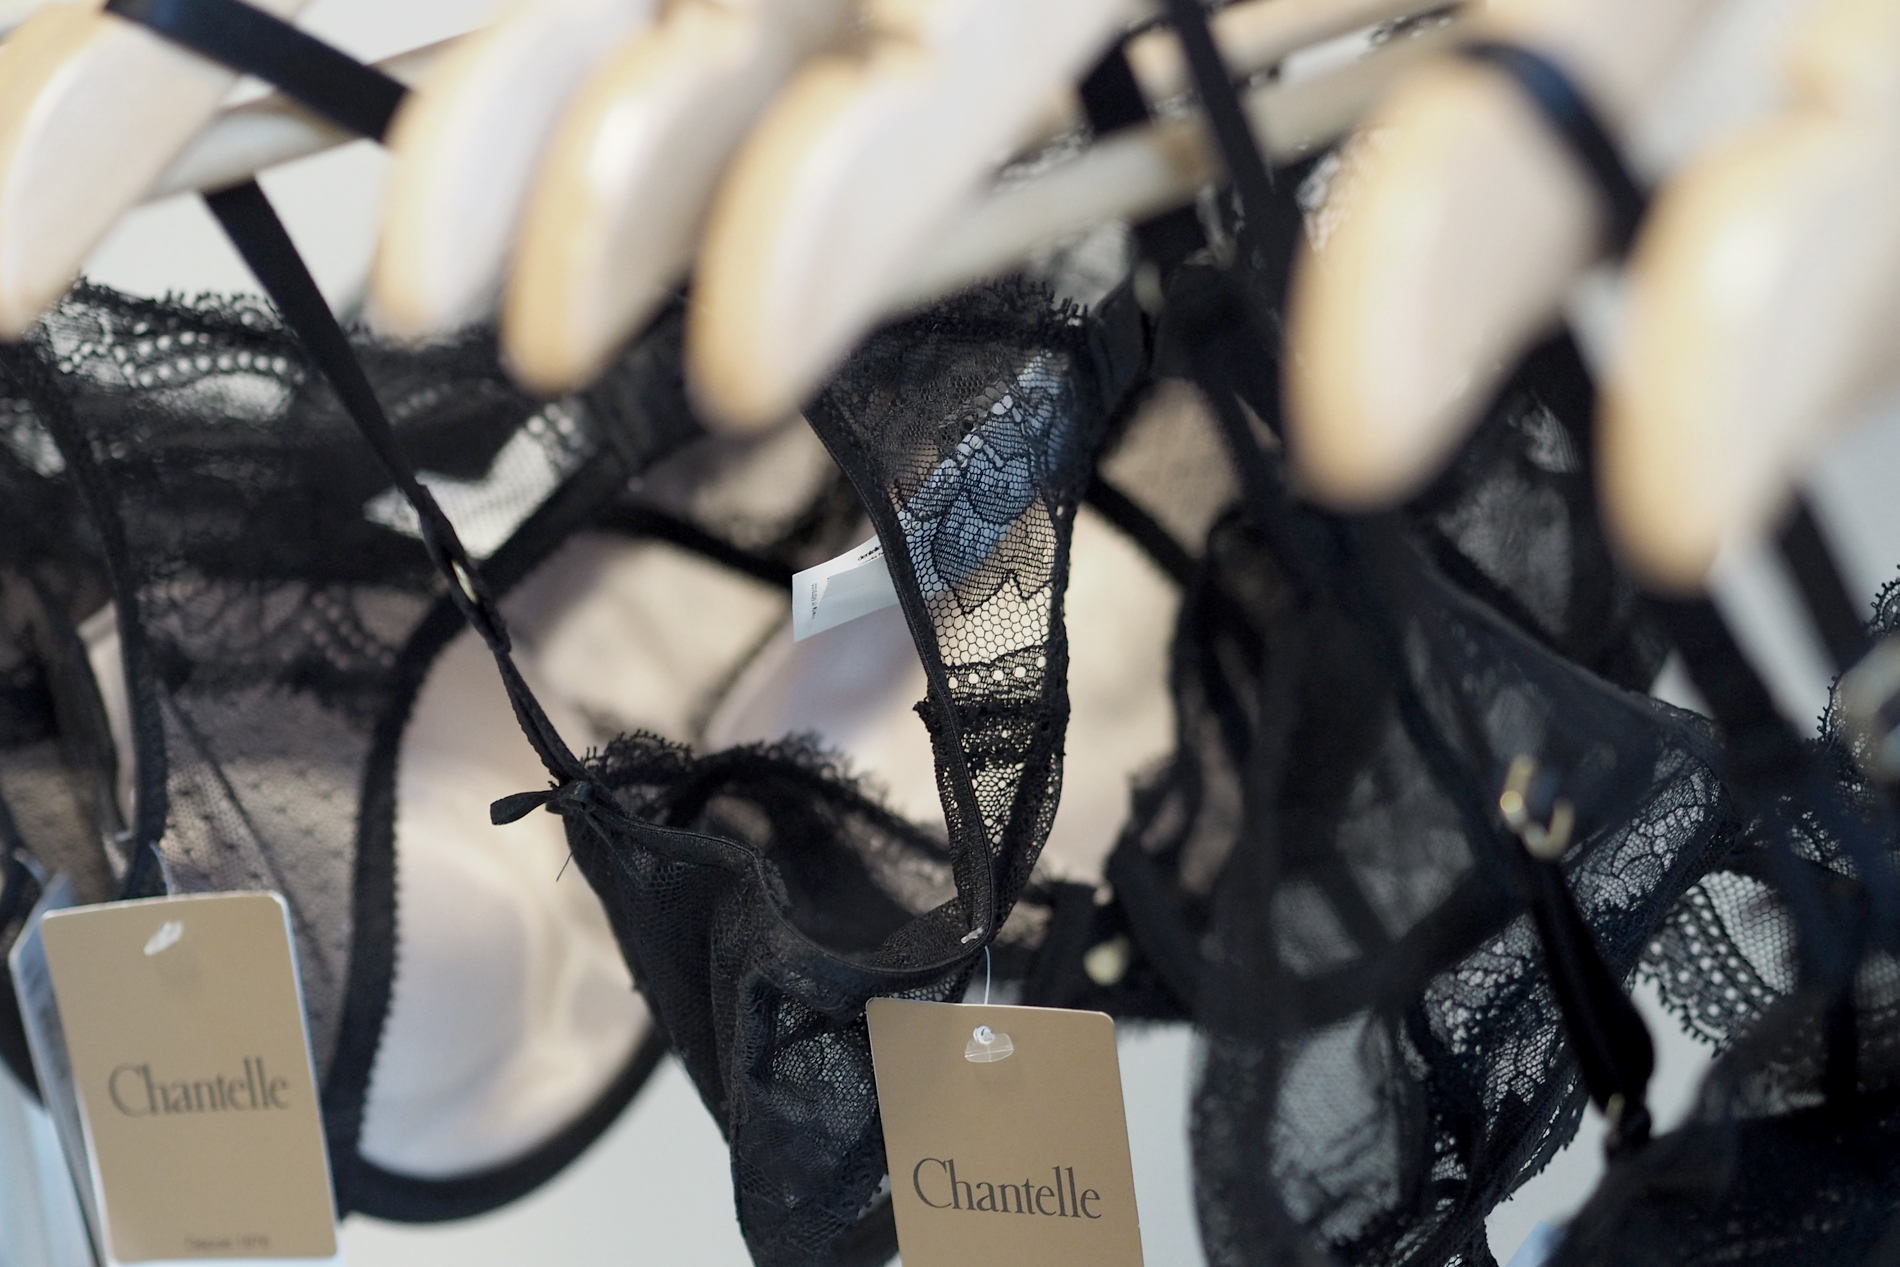 chantelle event paris champagne dessous paris france luxury underwear bra lace chic blogger style travel quality sexy bralette dyptique chic parisienne style blogger cats & dogs ricarda schernus 3